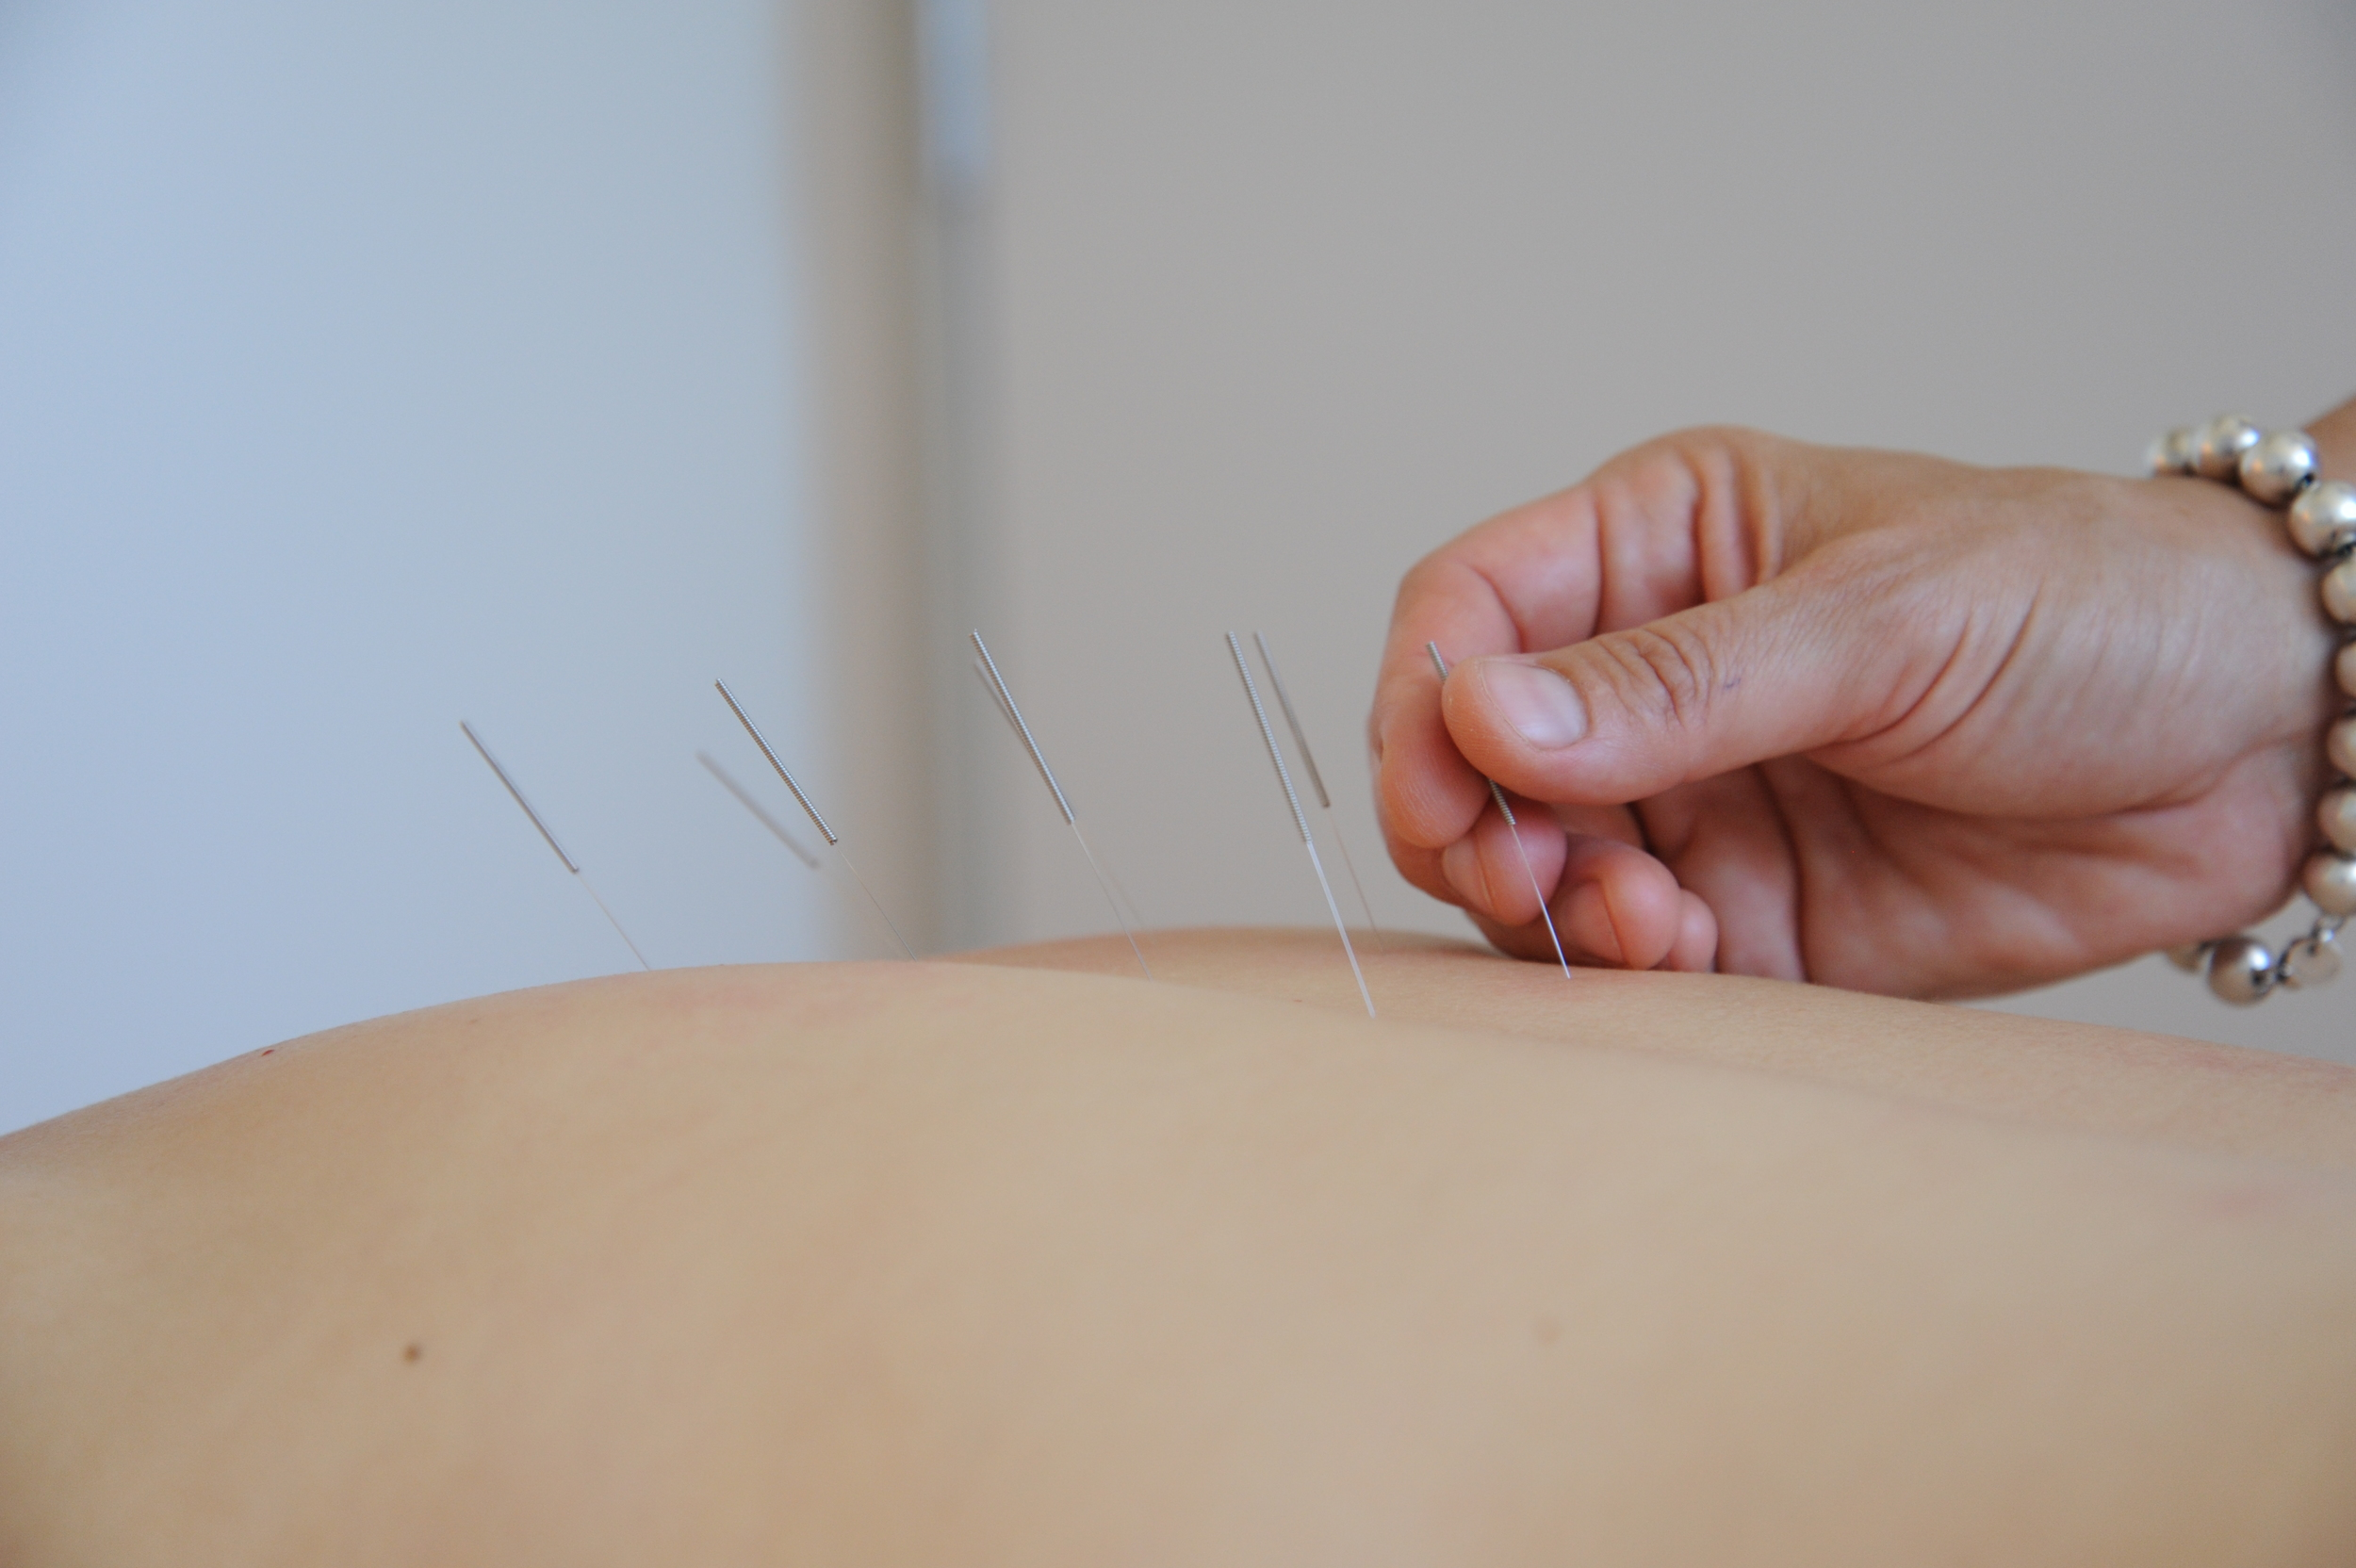 Painless Acupuncture for Women's Health